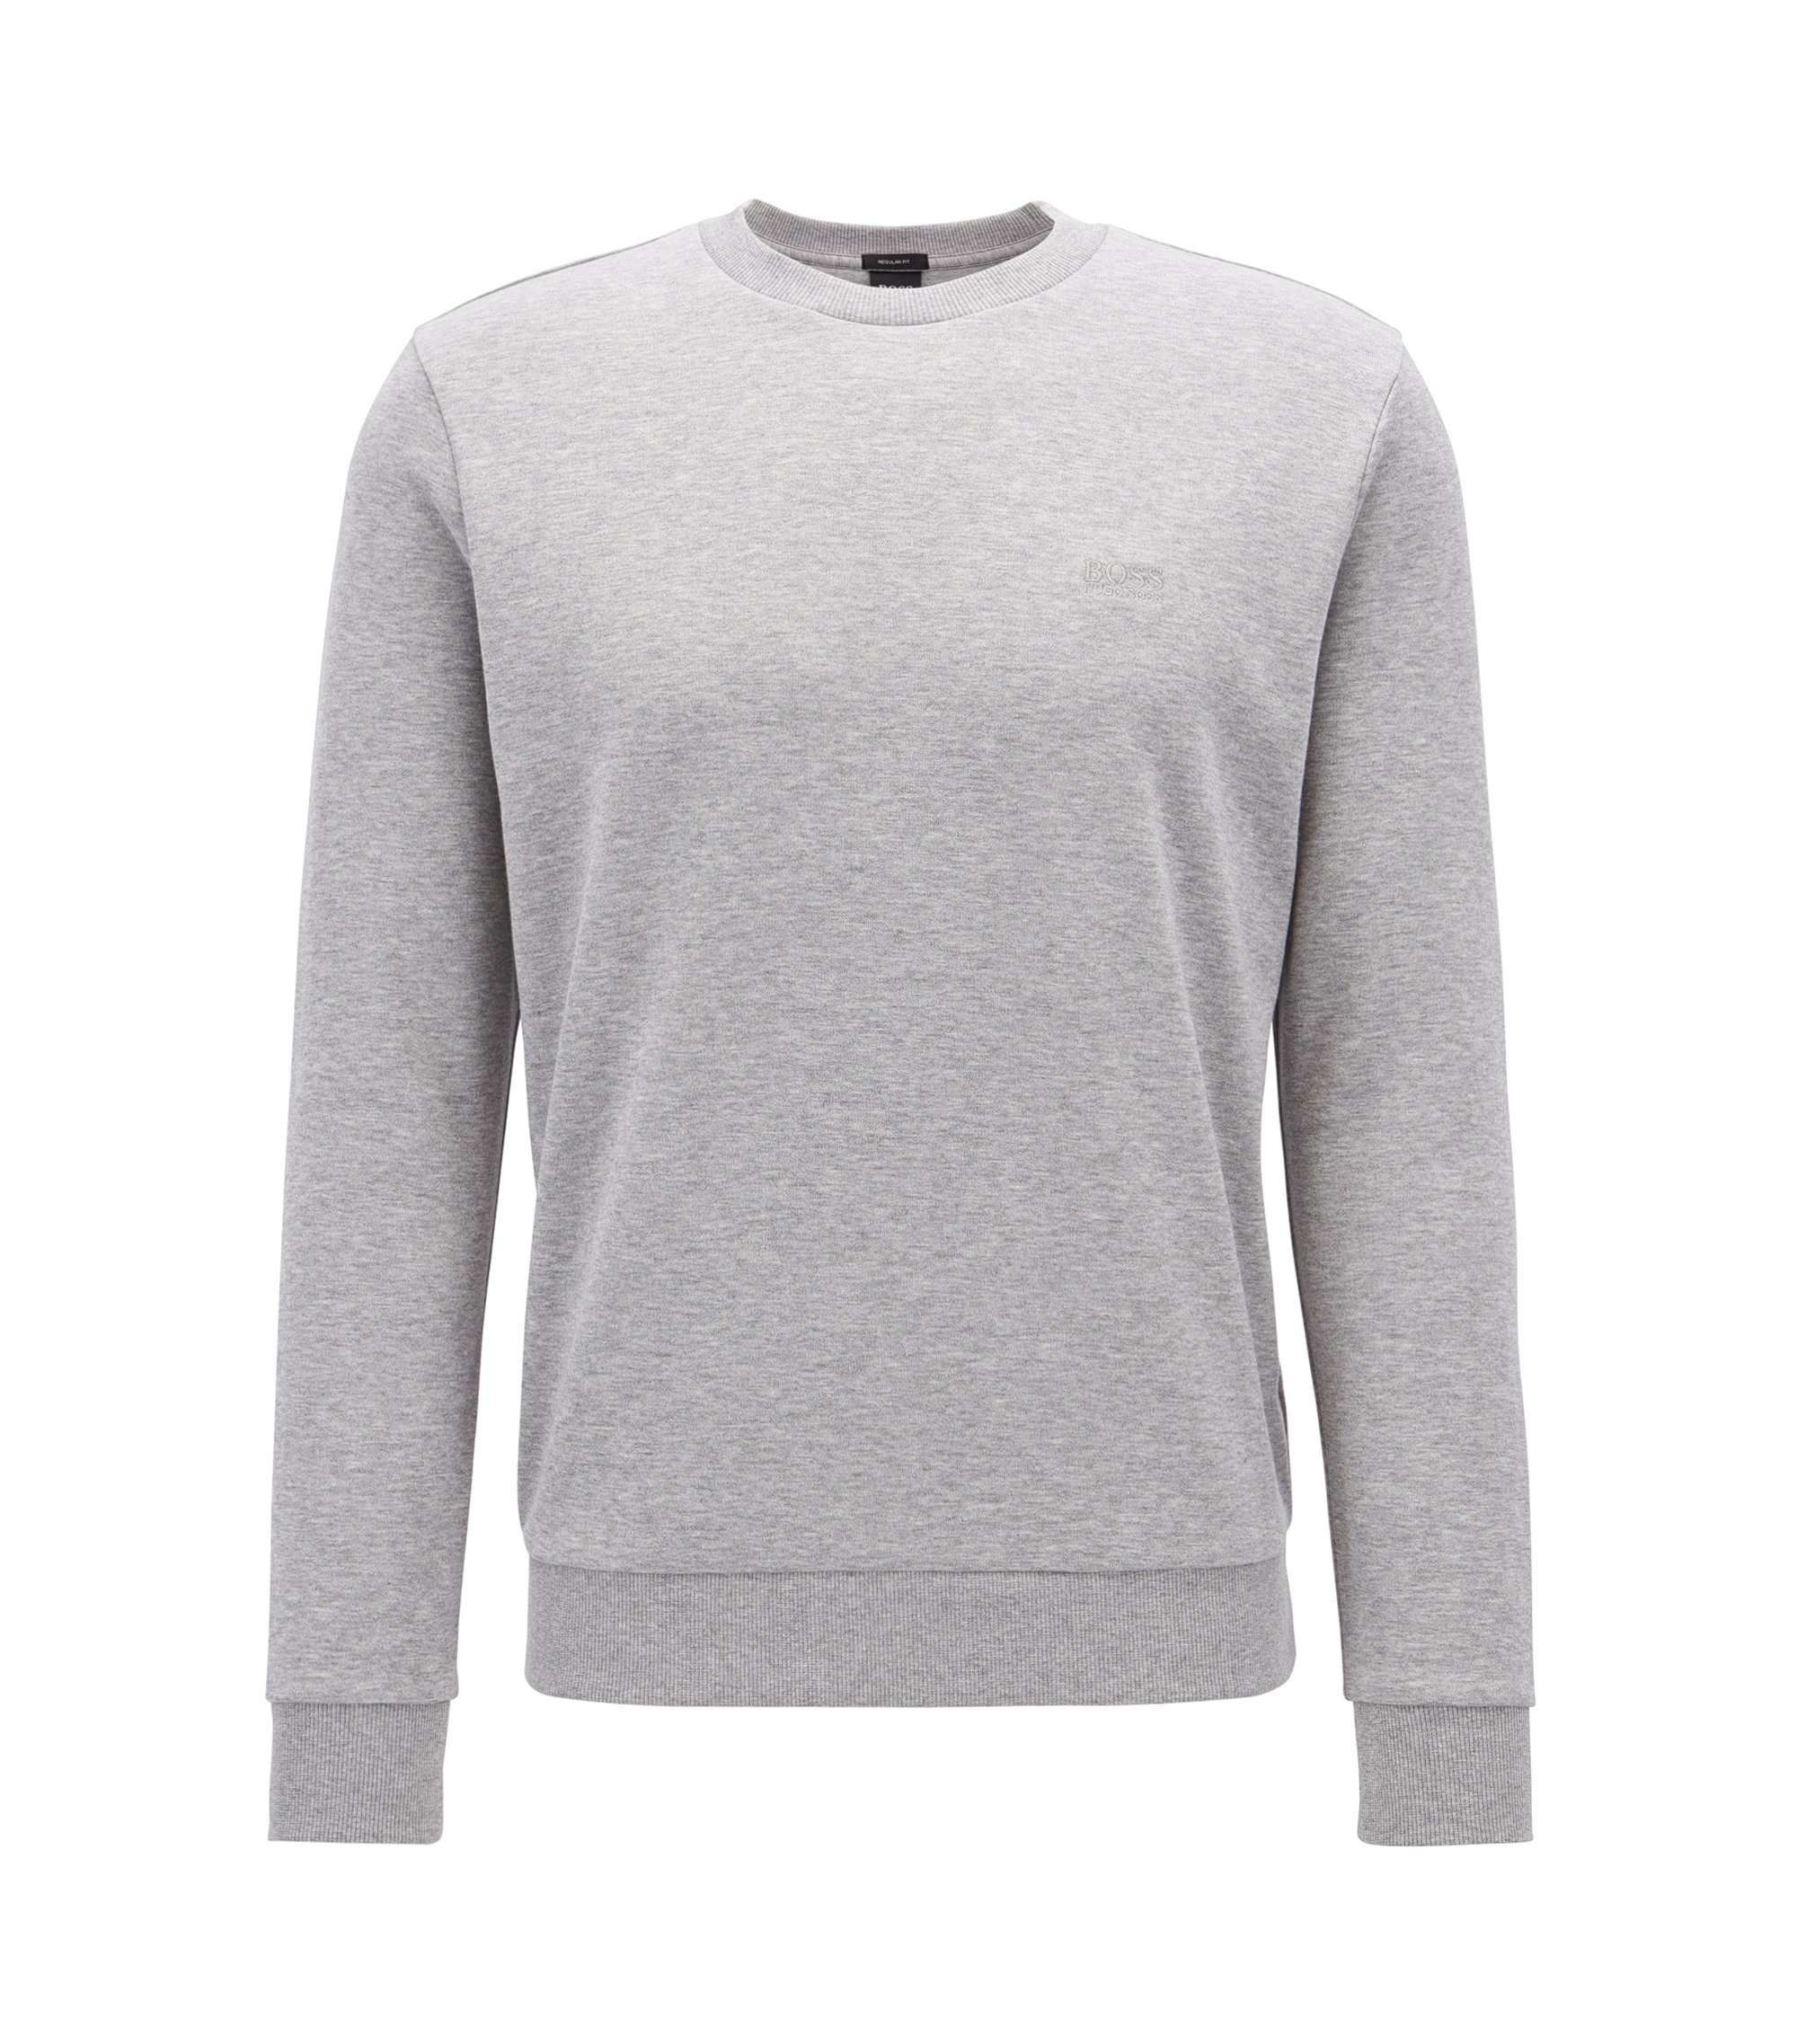 Crew-neck sweatshirt with logo embroidery, Light Grey